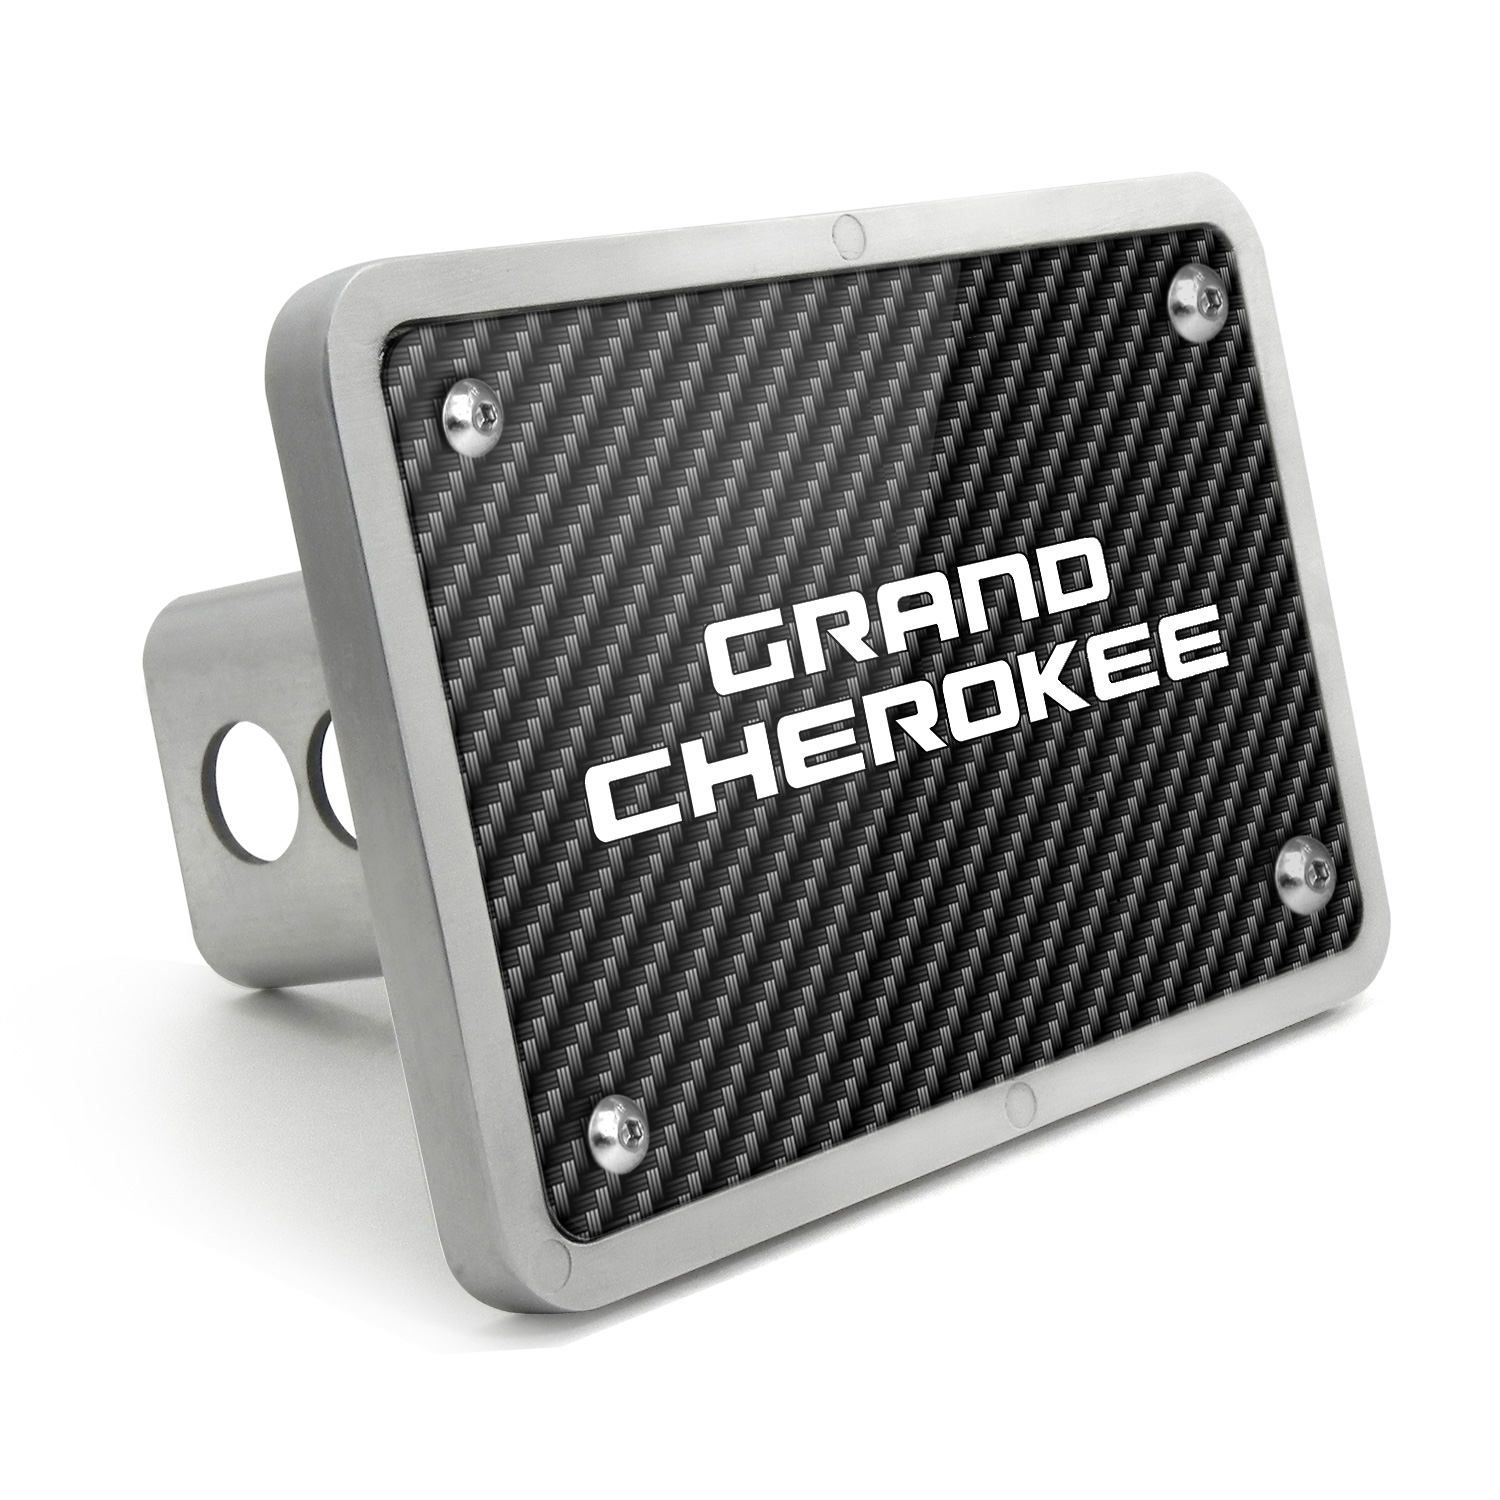 Jeep Grand Cherokee UV Graphic Carbon Fiber Texture Billet Aluminum 2 inch Tow Hitch Cover